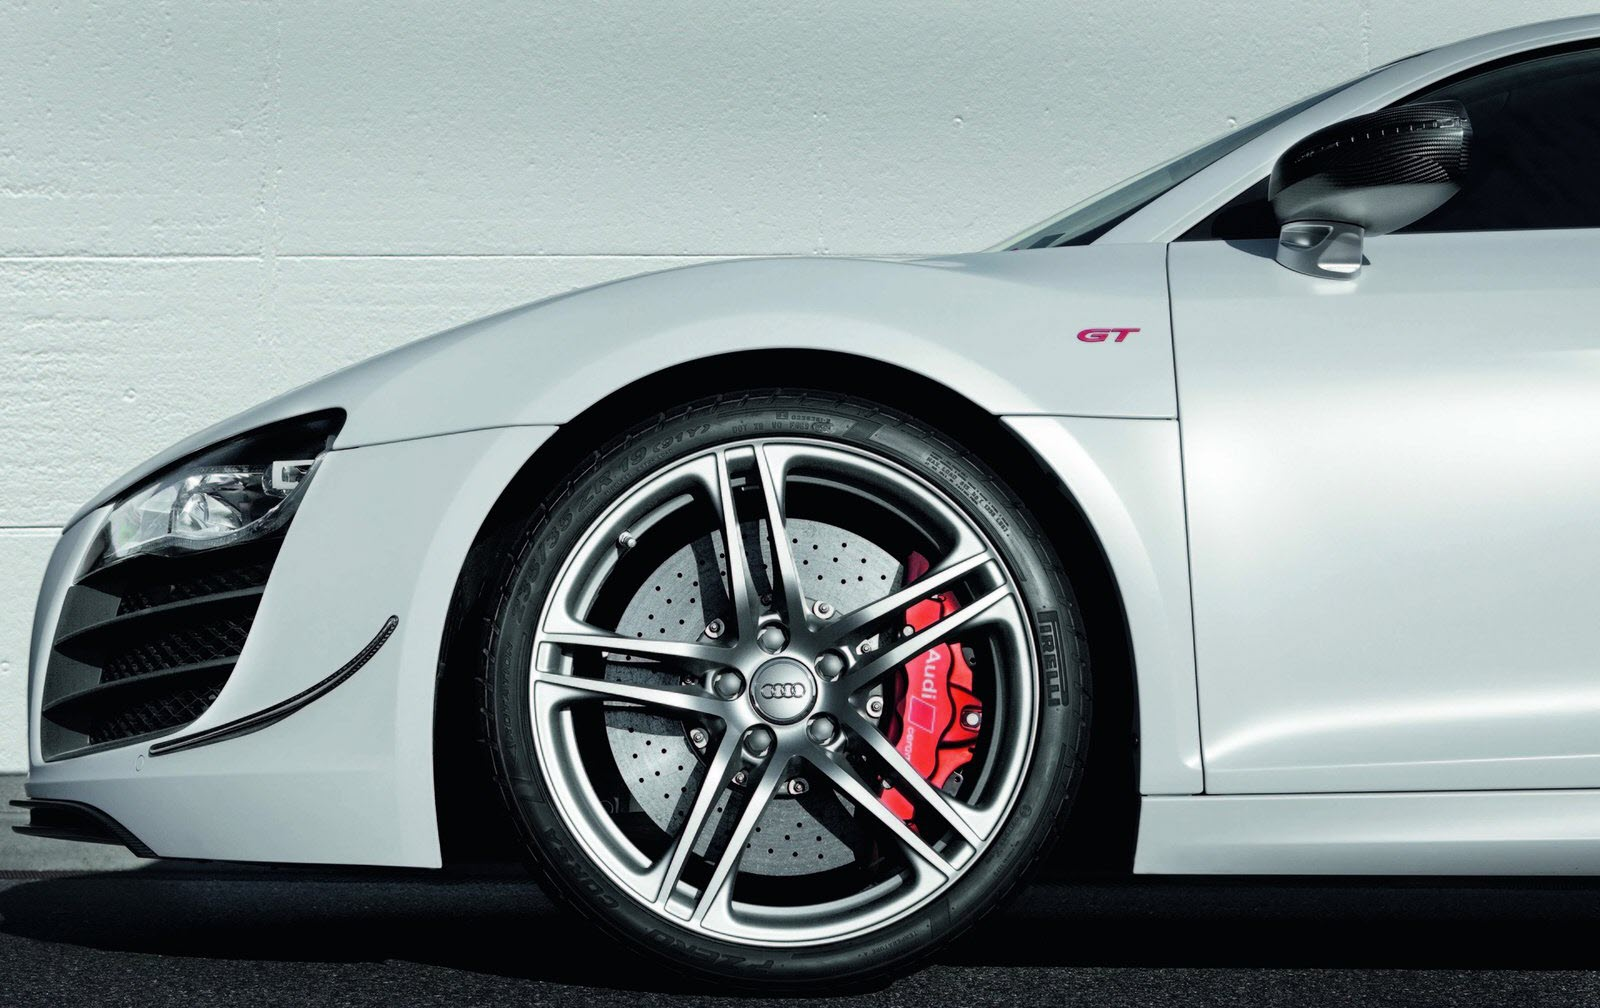 audi r8 modified wheels images galleries with a bite. Black Bedroom Furniture Sets. Home Design Ideas